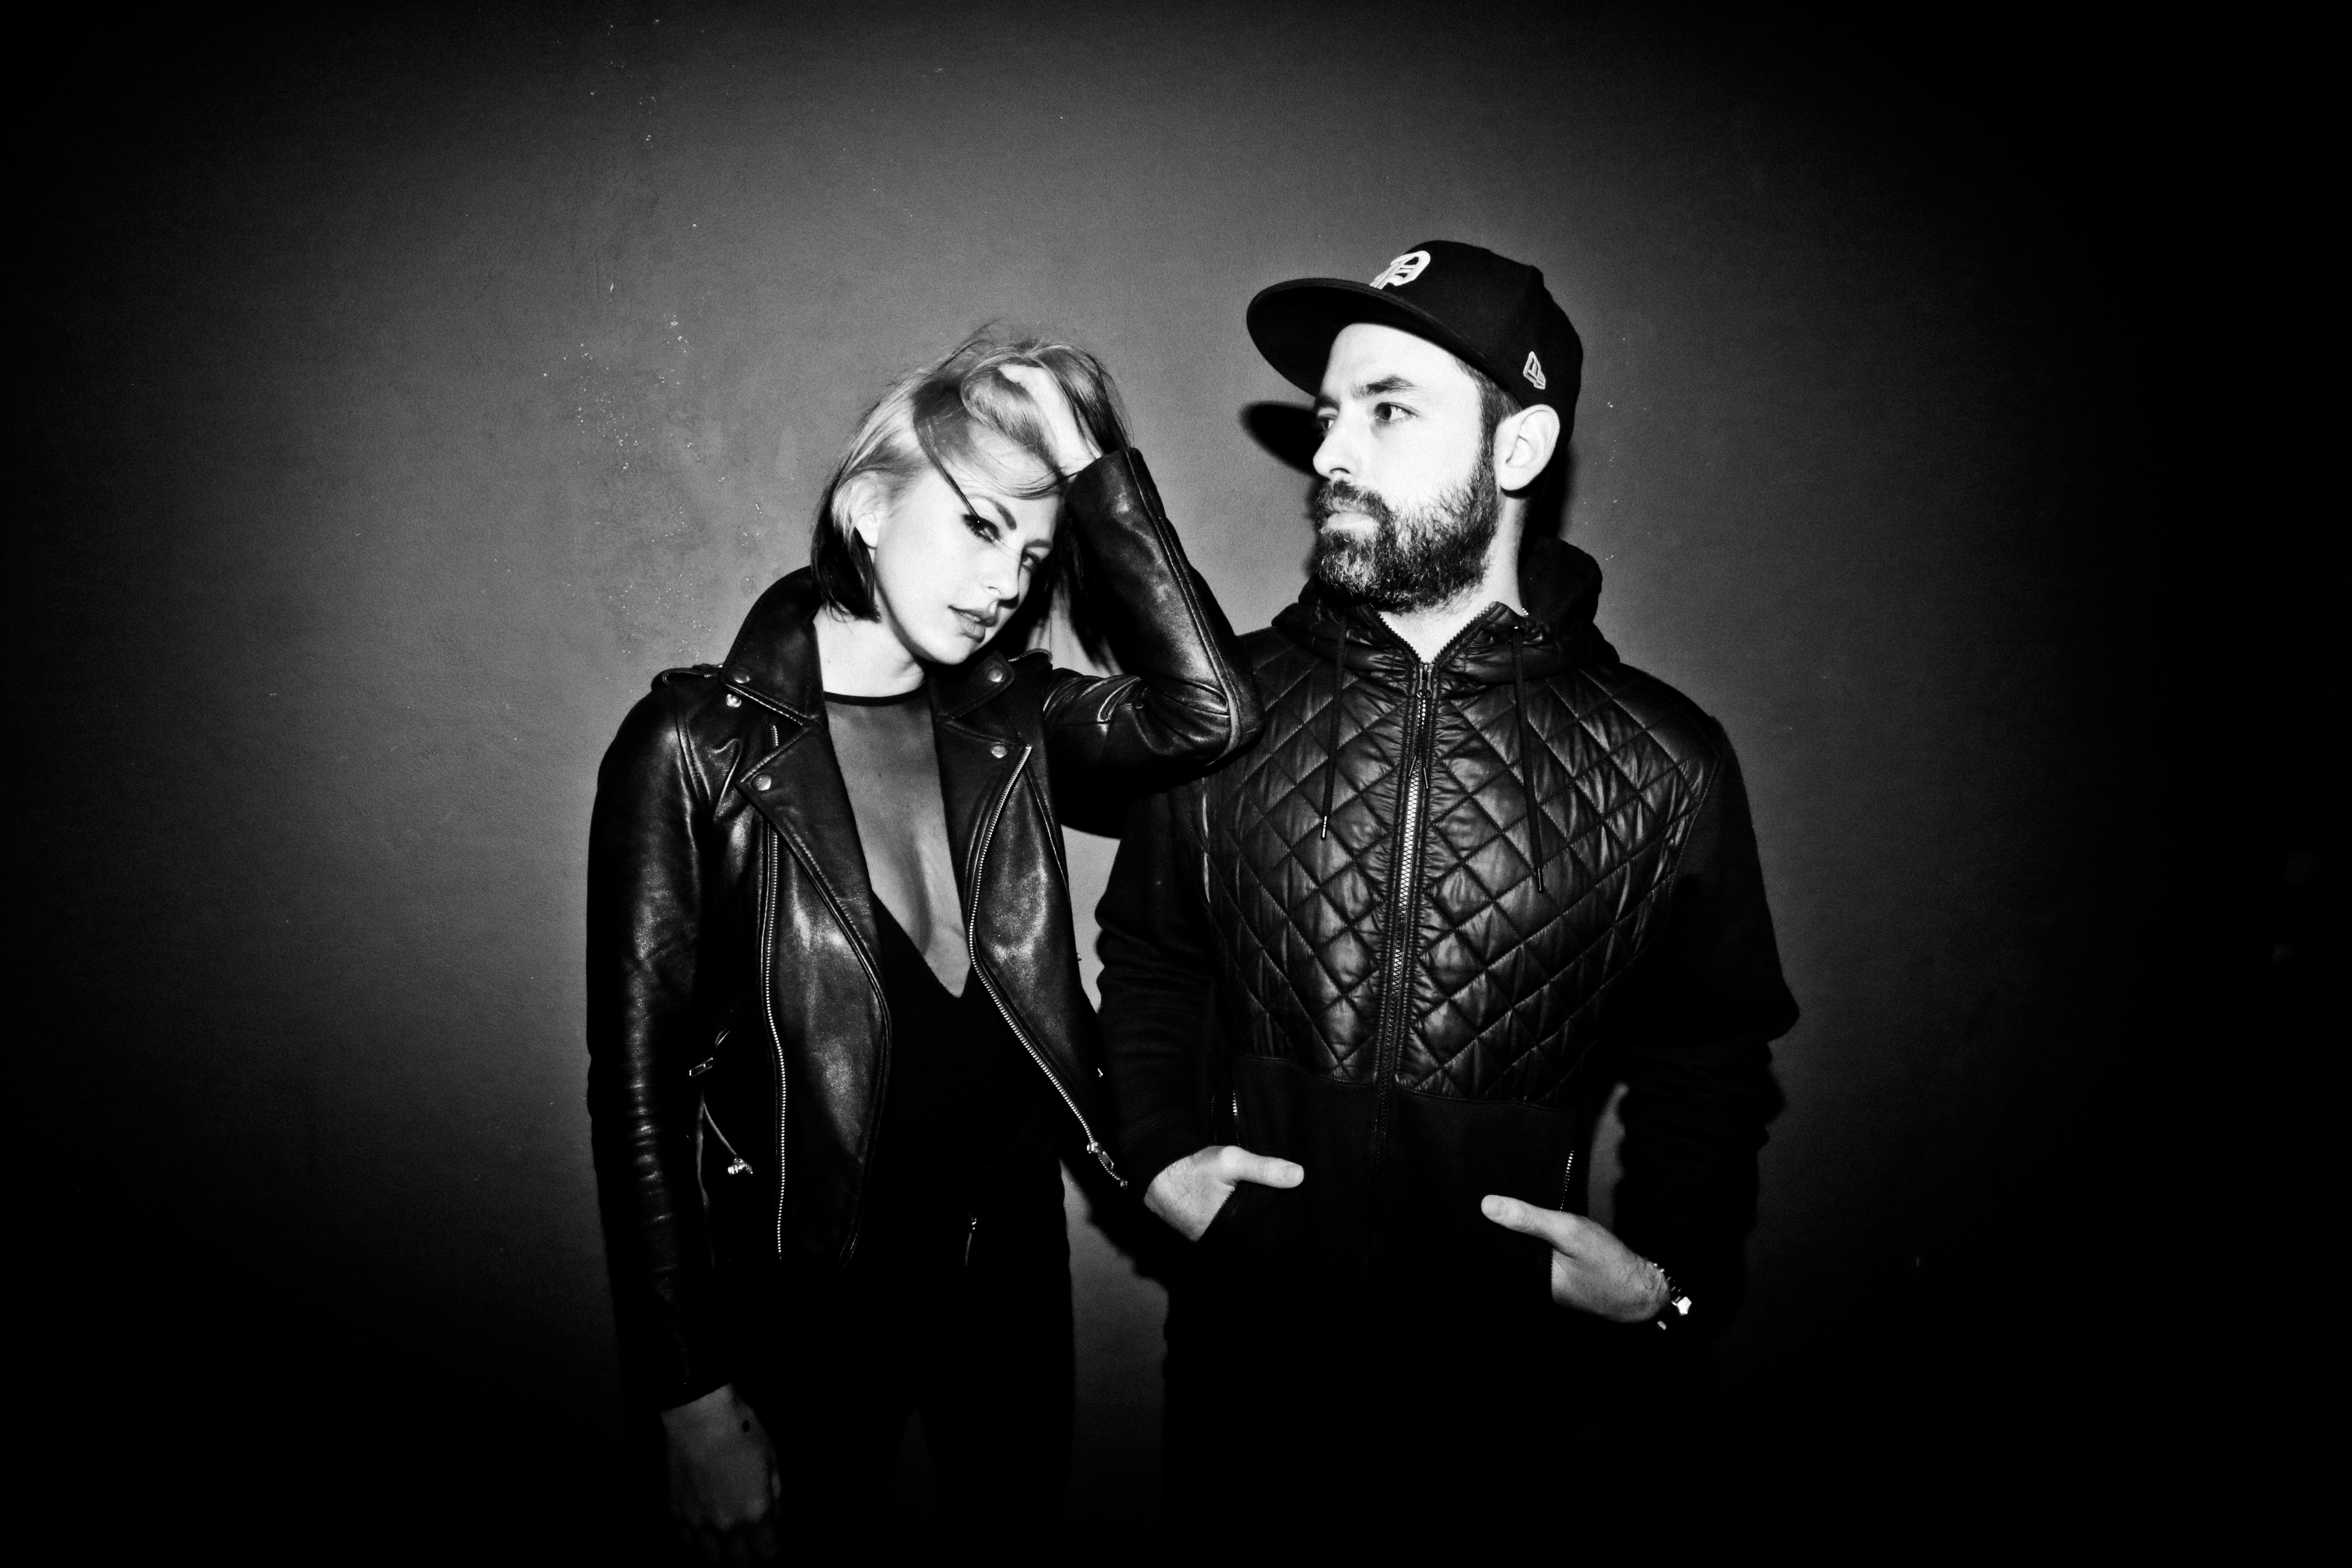 PHANTOGRAM (20 of 21)